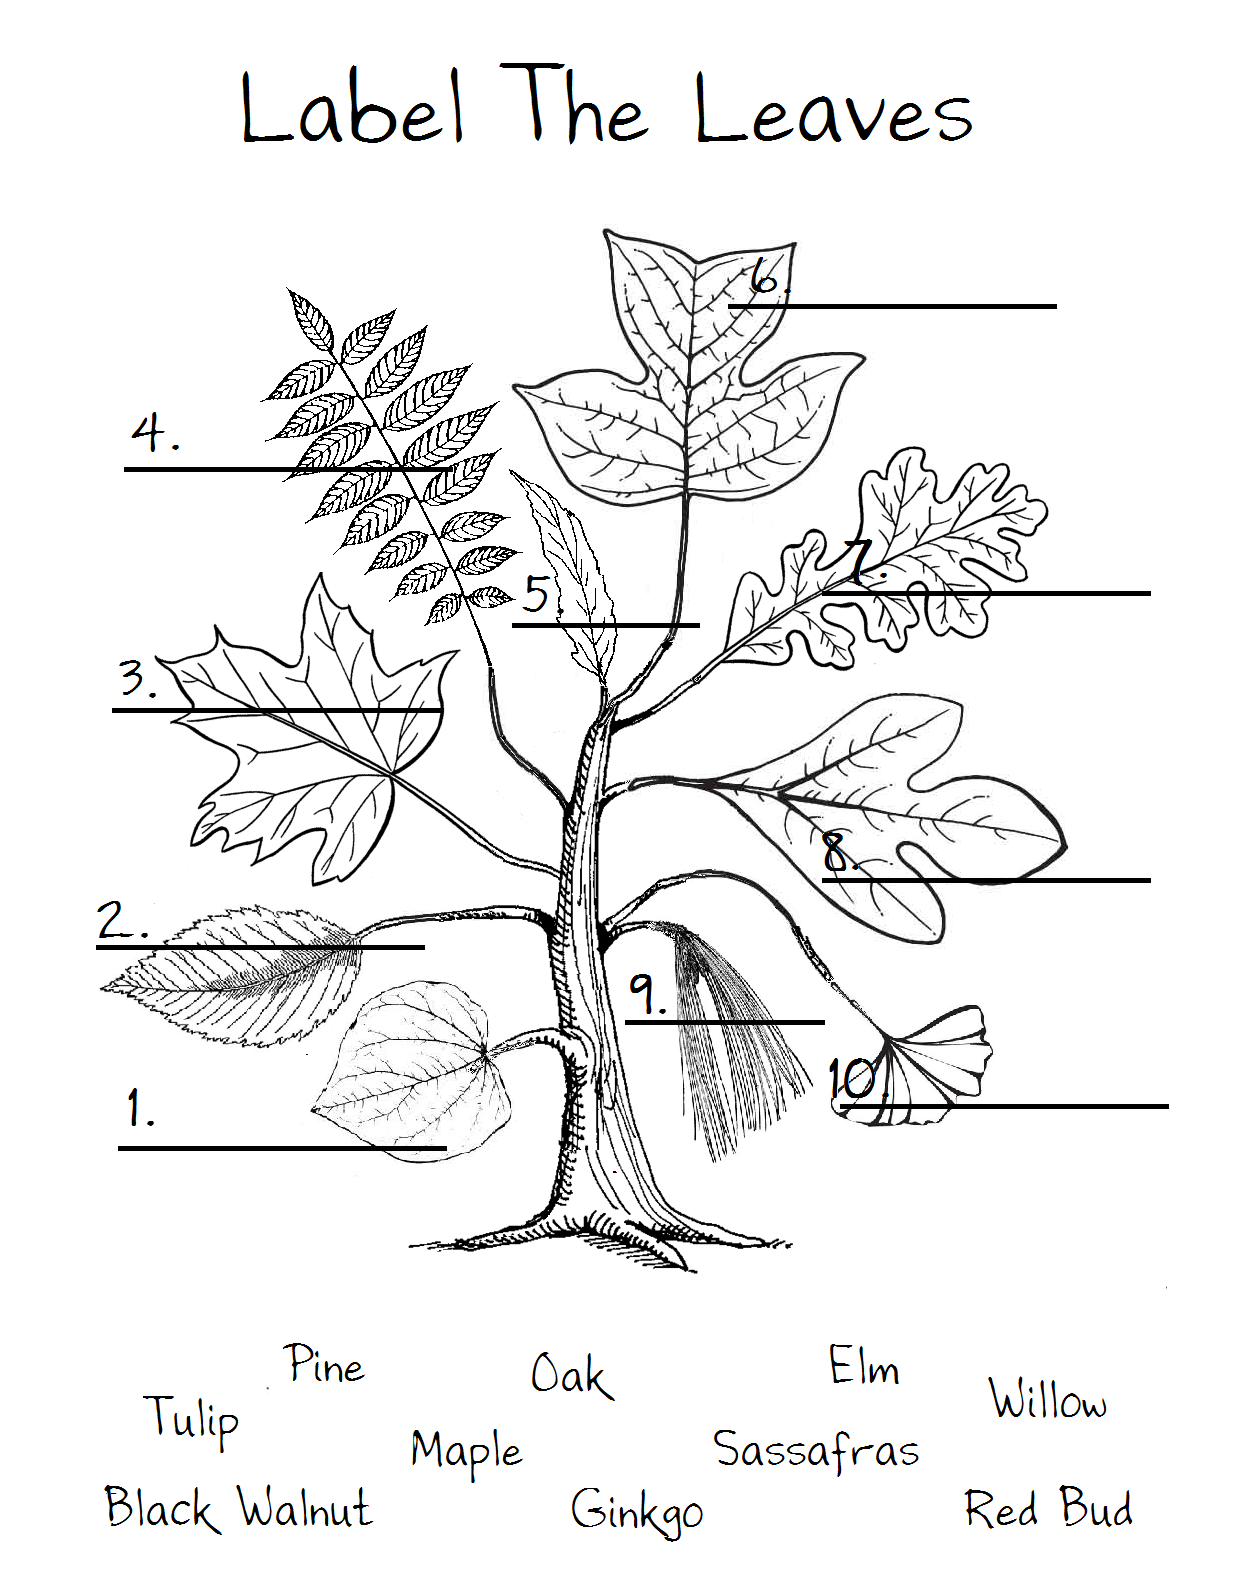 1 Red Bud 2 Elm 3 Maple 4 Black Walnut 5 Willow 6